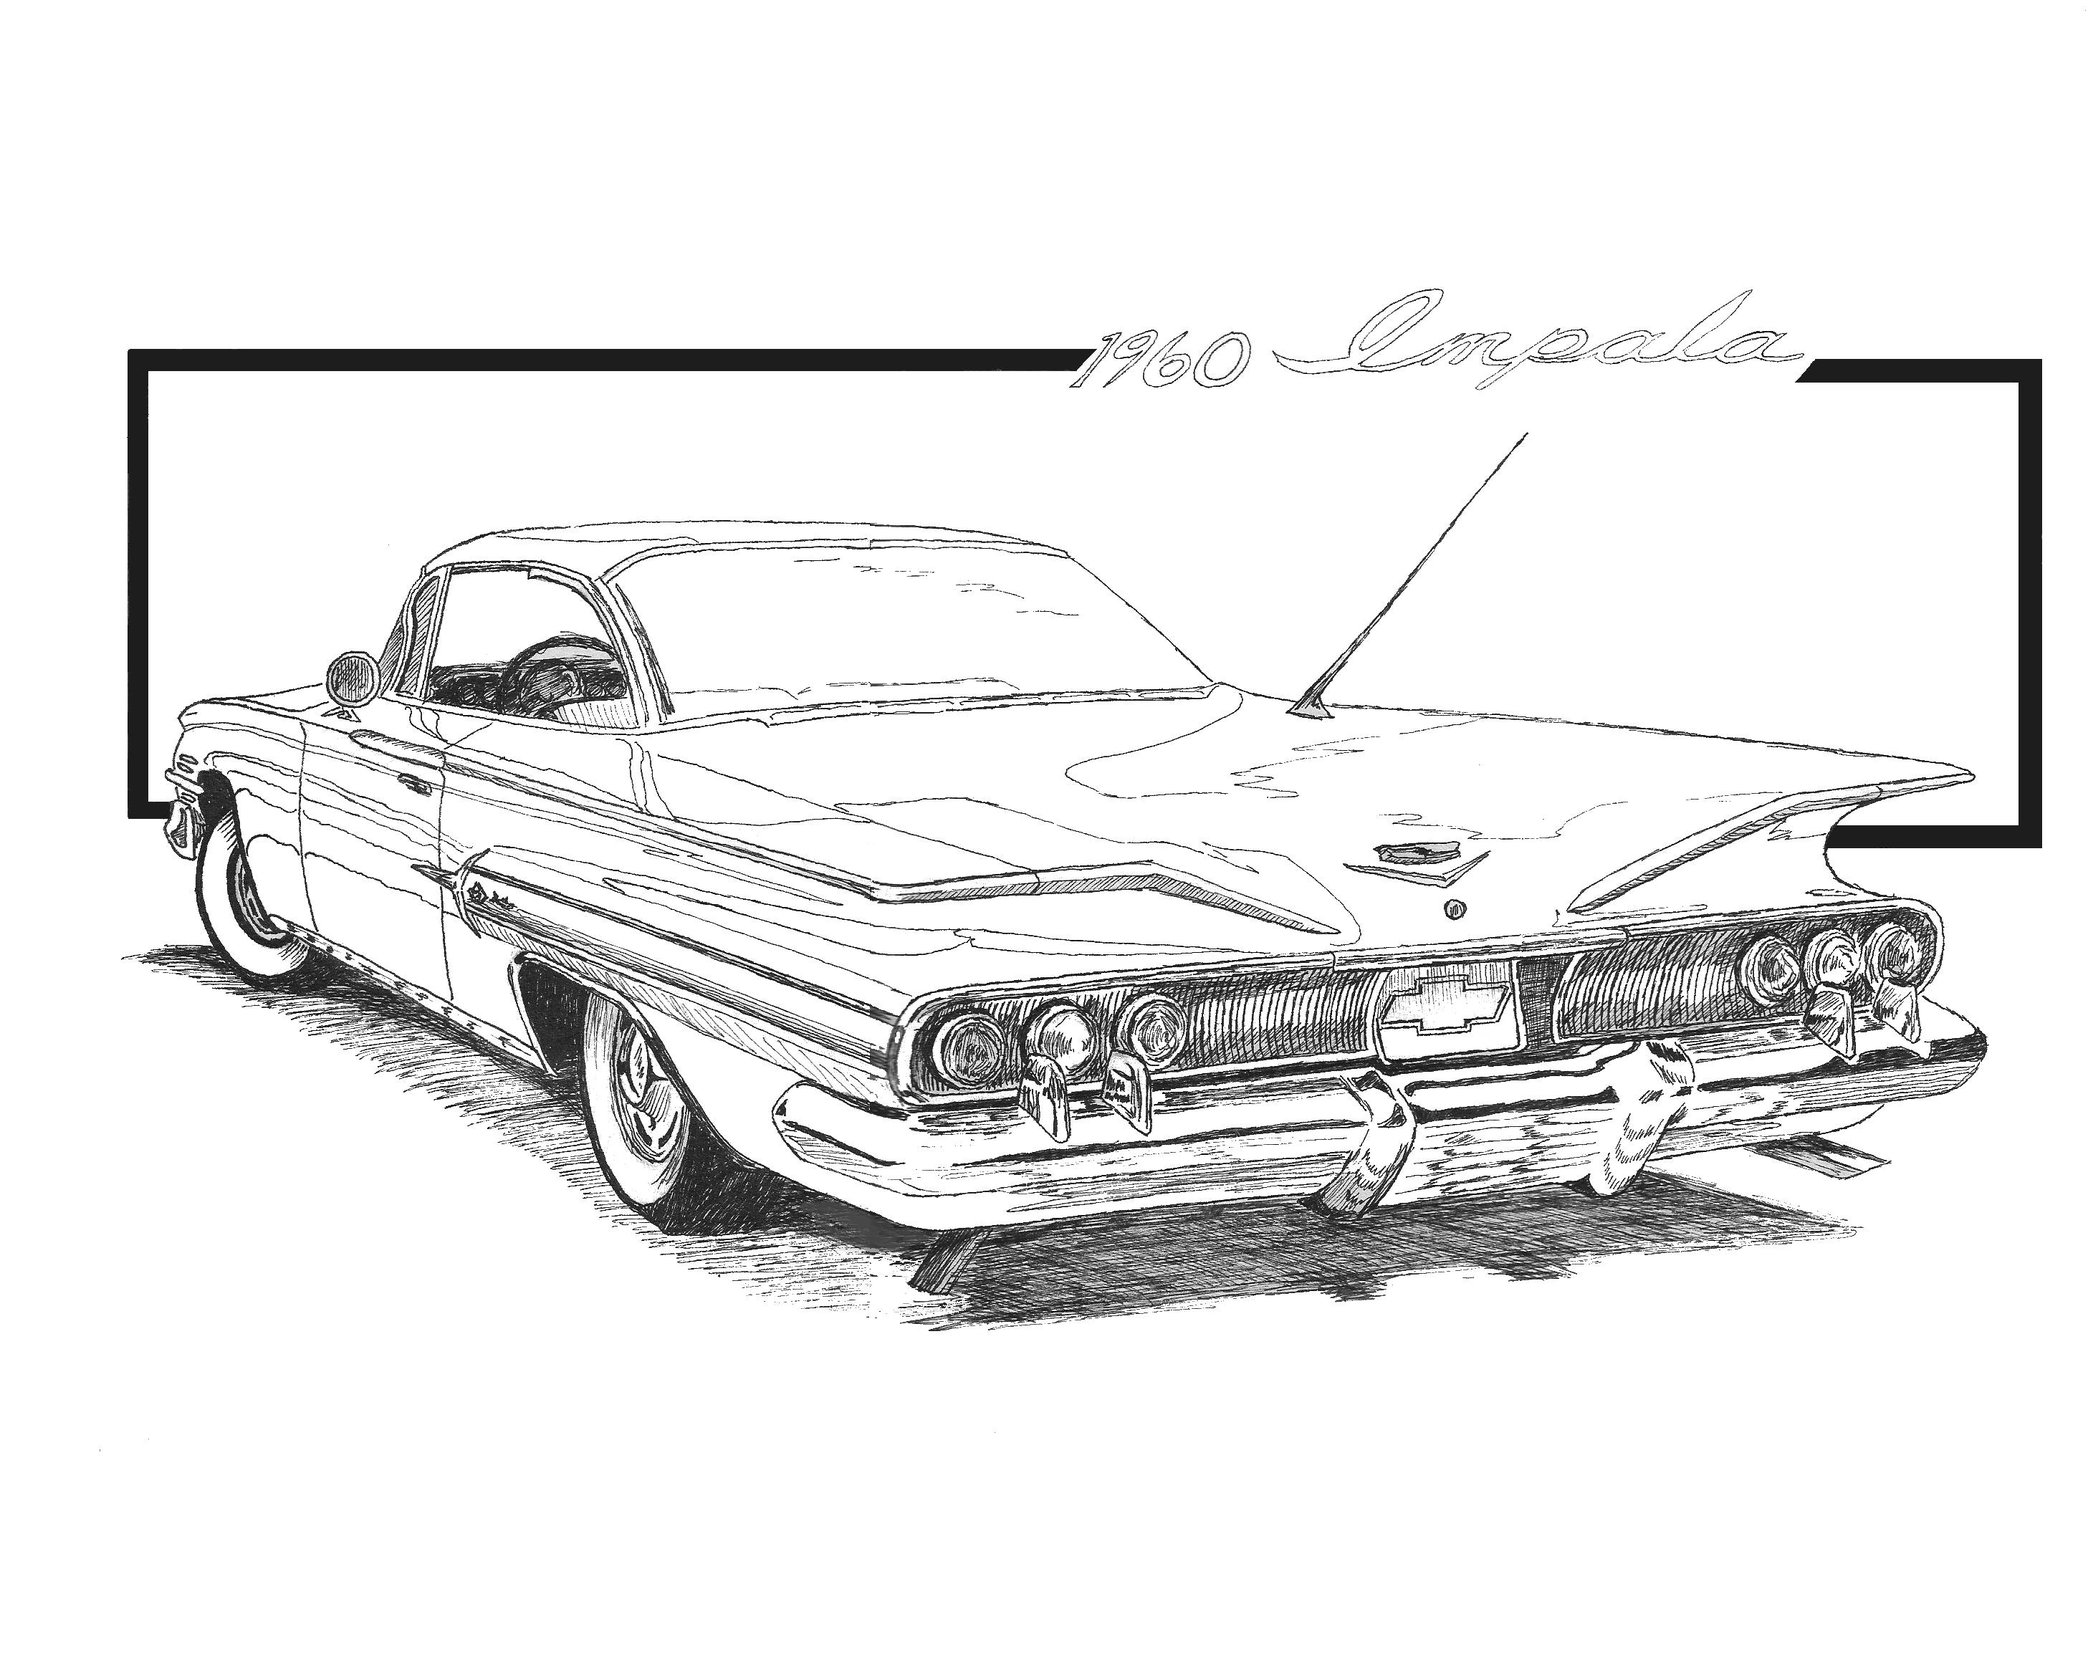 Drawn vehicle impala Wilex on by Wilex by